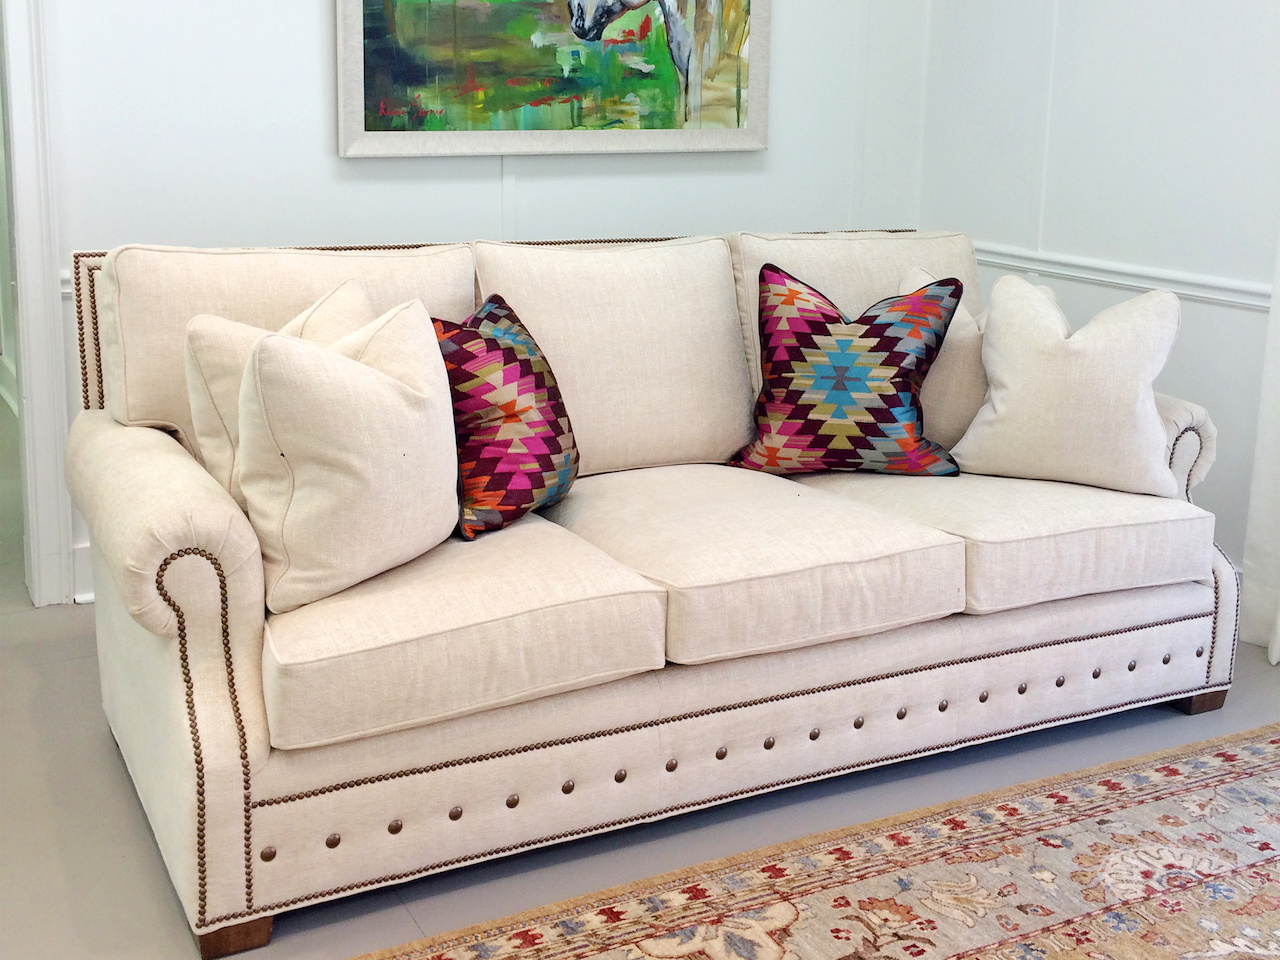 White couch StyleBlueprint Atlanta